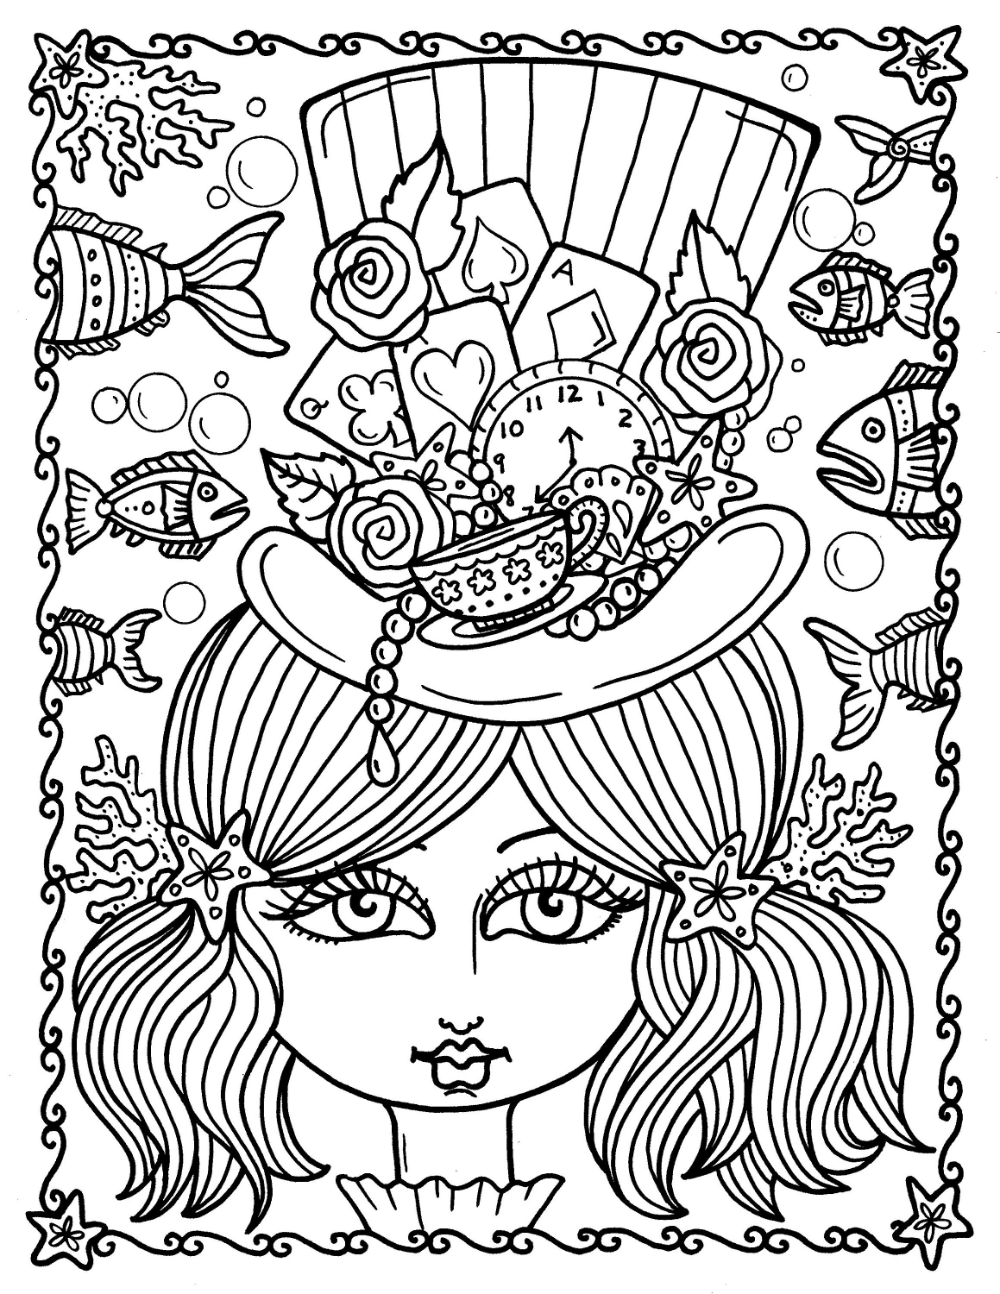 Digital Coloring Book Instant Download Alice In Waterland Etsy Coloring Books Love Coloring Pages Star Coloring Pages